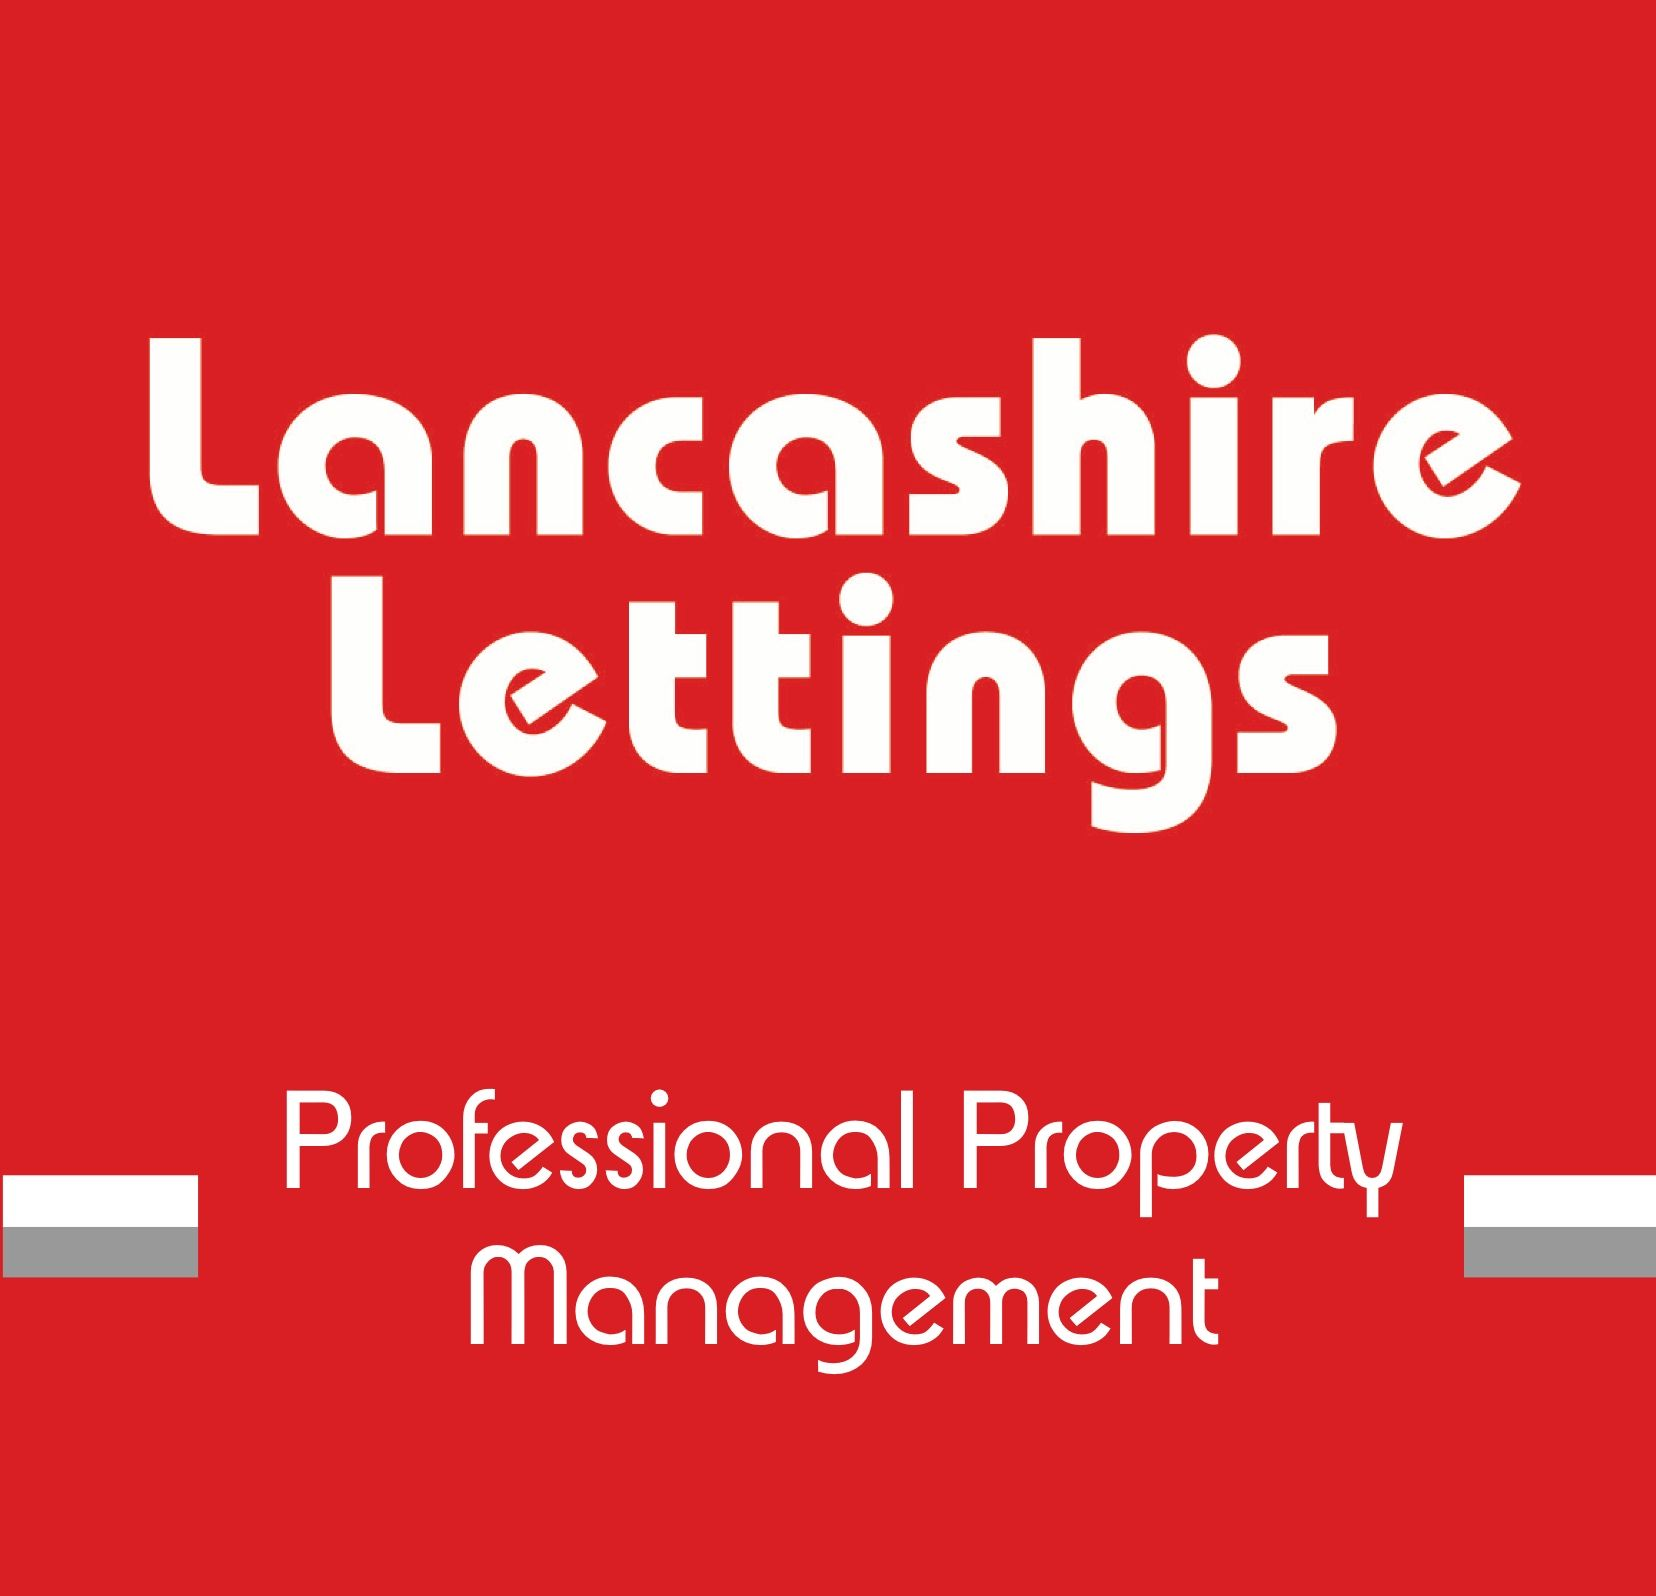 Company logo of Lancashire Lettings set in red rectangle with white and grey lines and white text